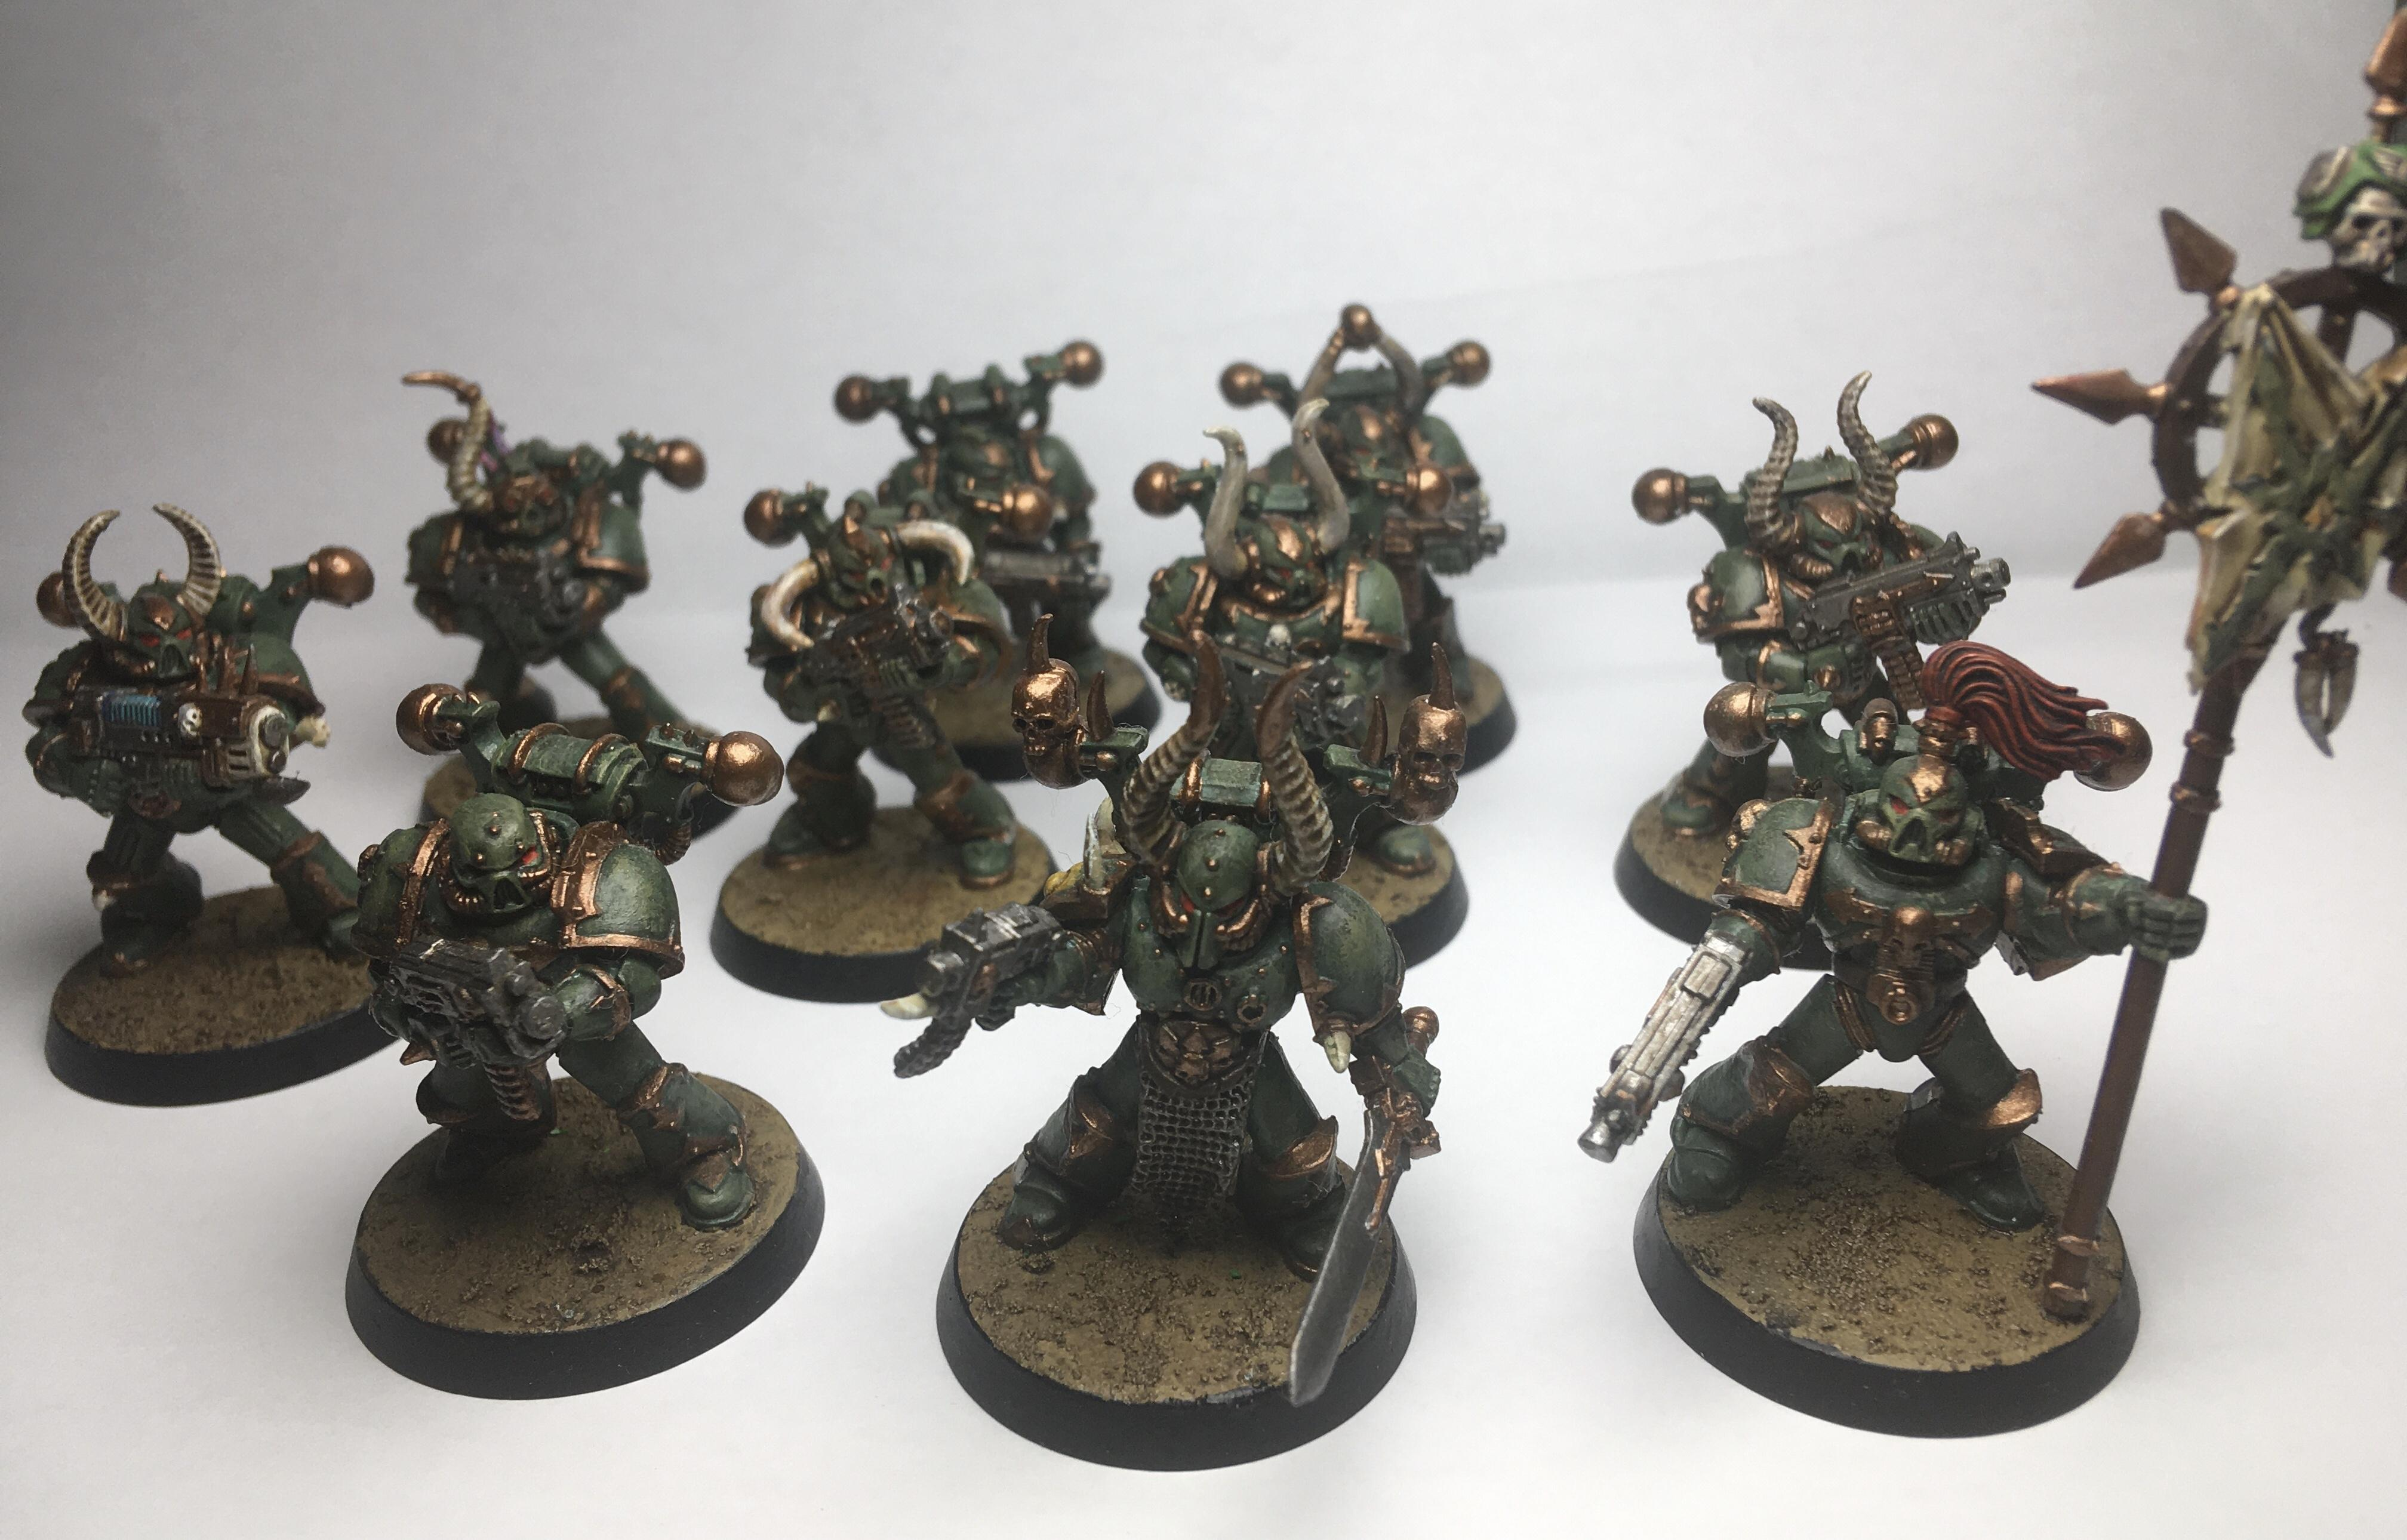 Armageddon Dust, Bolters, Chaos, Chaos Space Marines, Death Guard, Games Workshop, Nurgle, Plasma, Symbol Of Chaos, Tactical Squad, Warhammer 40,000